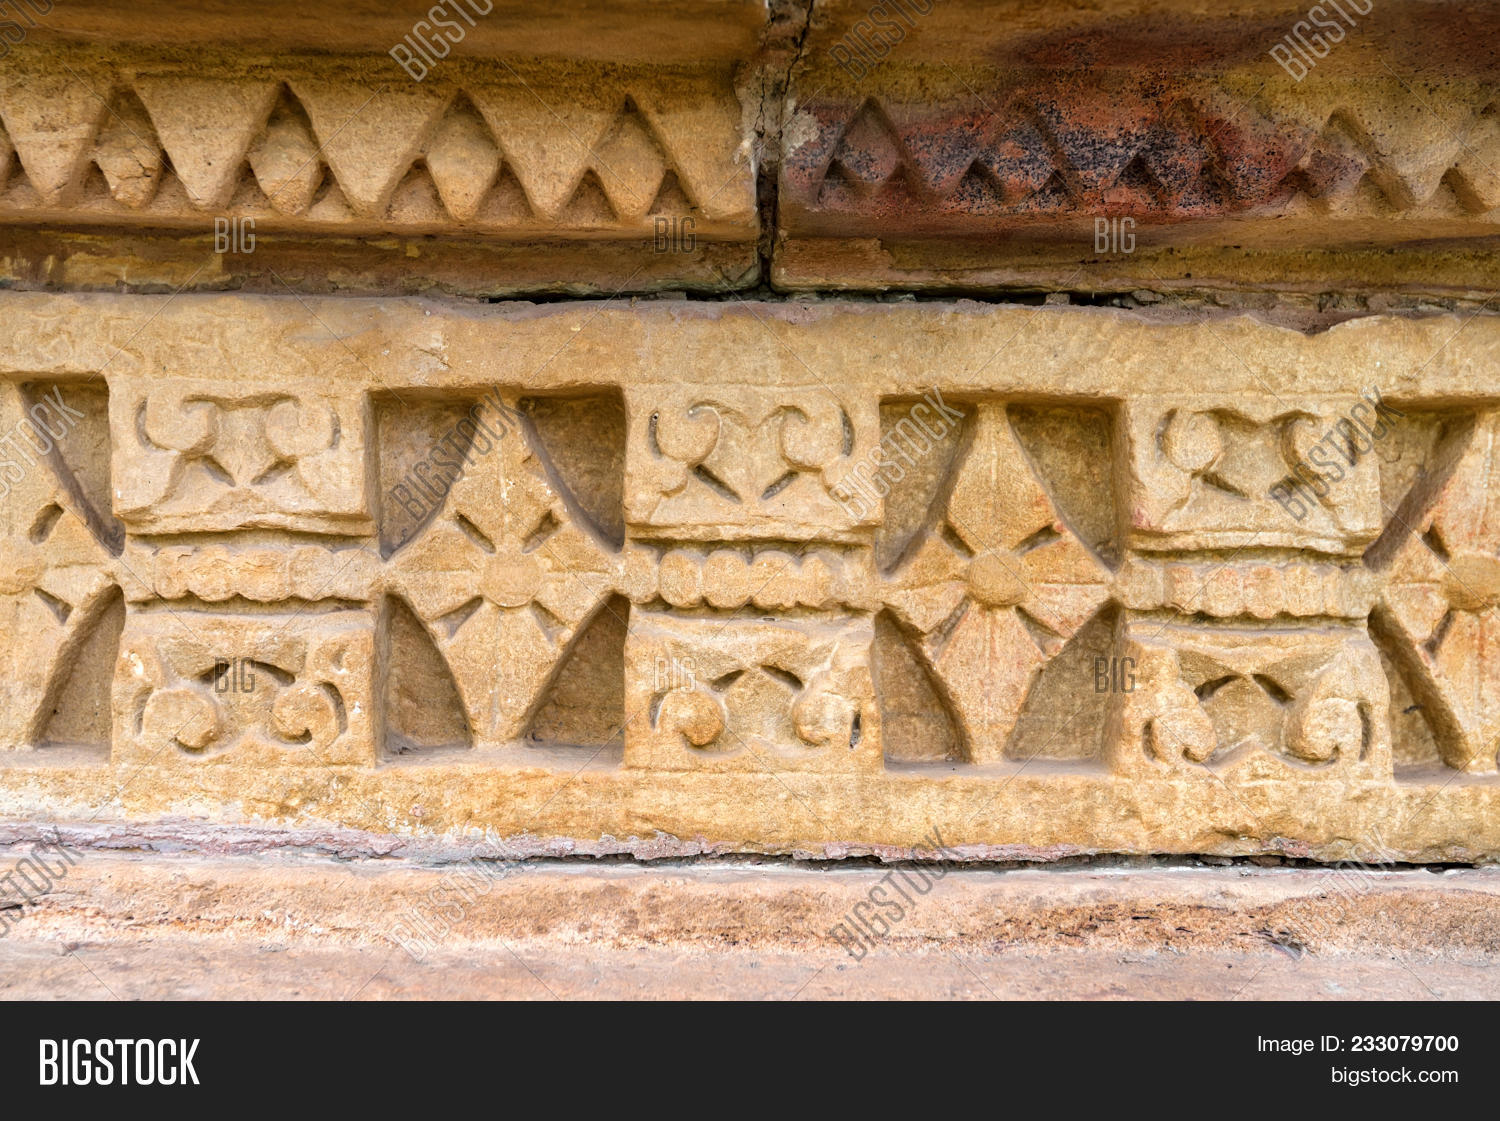 Decorative Carved Image & Photo (Free Trial) | Bigstock